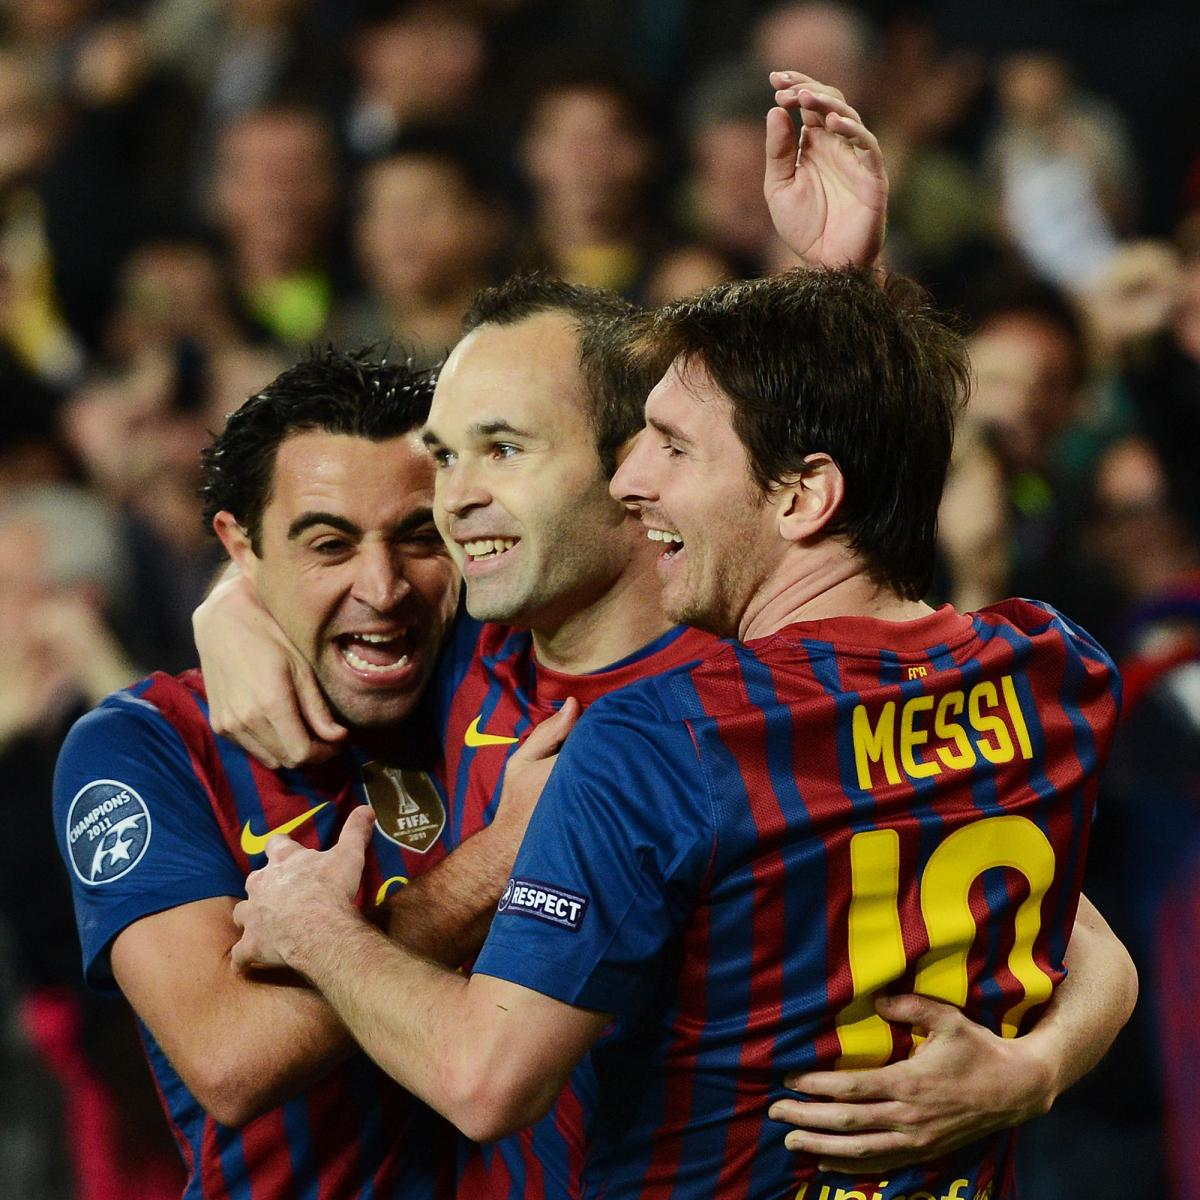 Messi Xavi And Iniesta How Long Can Barca Keep Them Together Bleacher Report Latest News Videos And Highlights